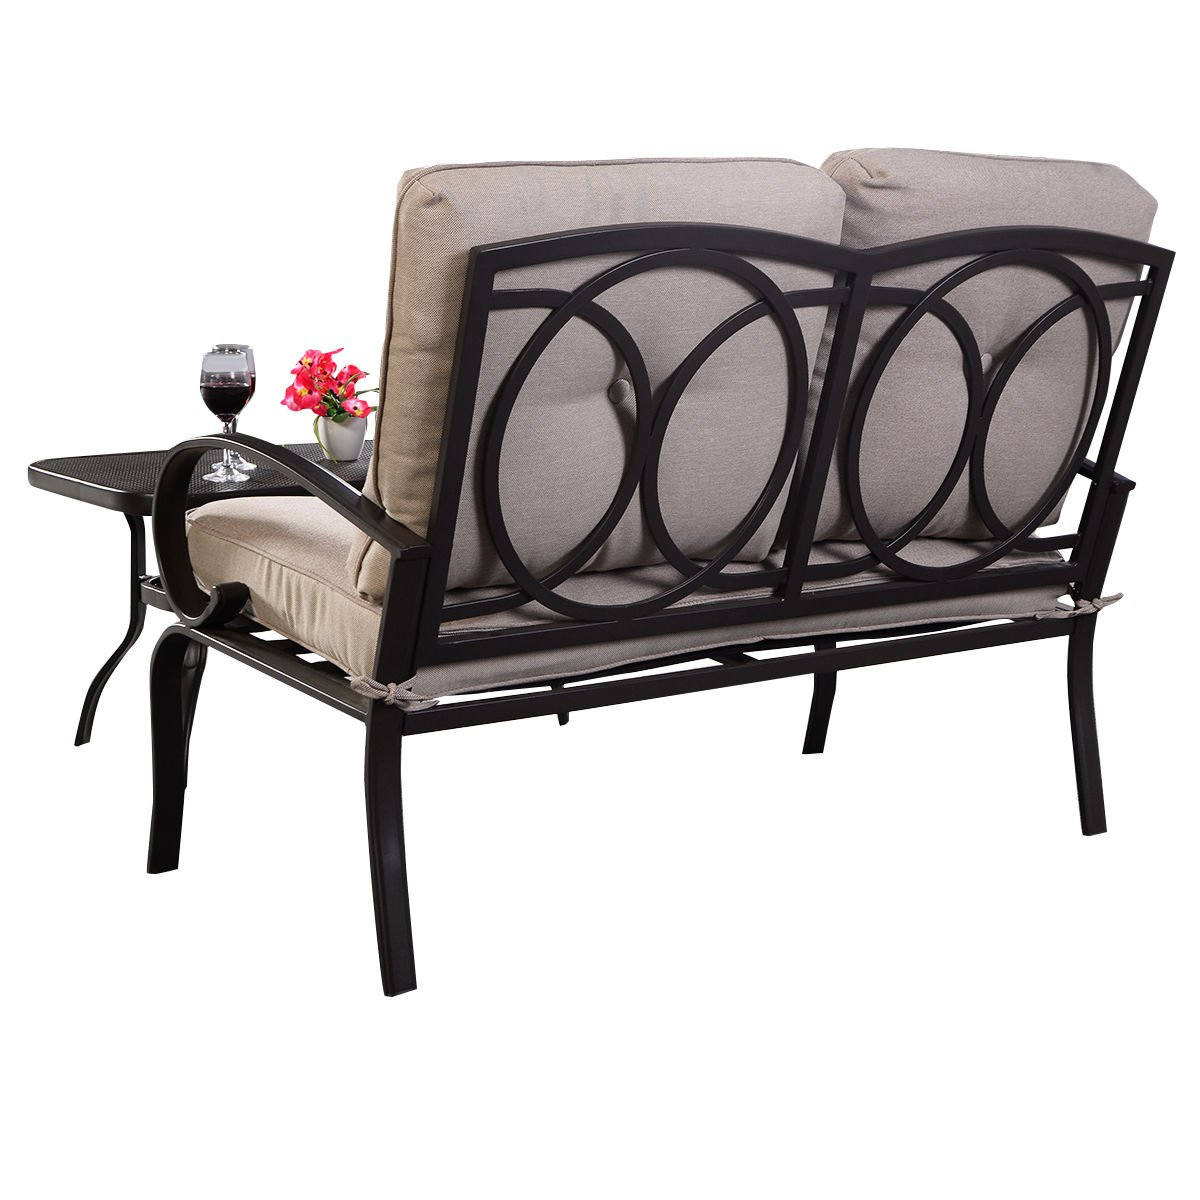 Giantex 2 Pcs Patio Outdoor LoveSeat Coffee Table Set Furniture Bench With Cushion by Giantex (Image #7)